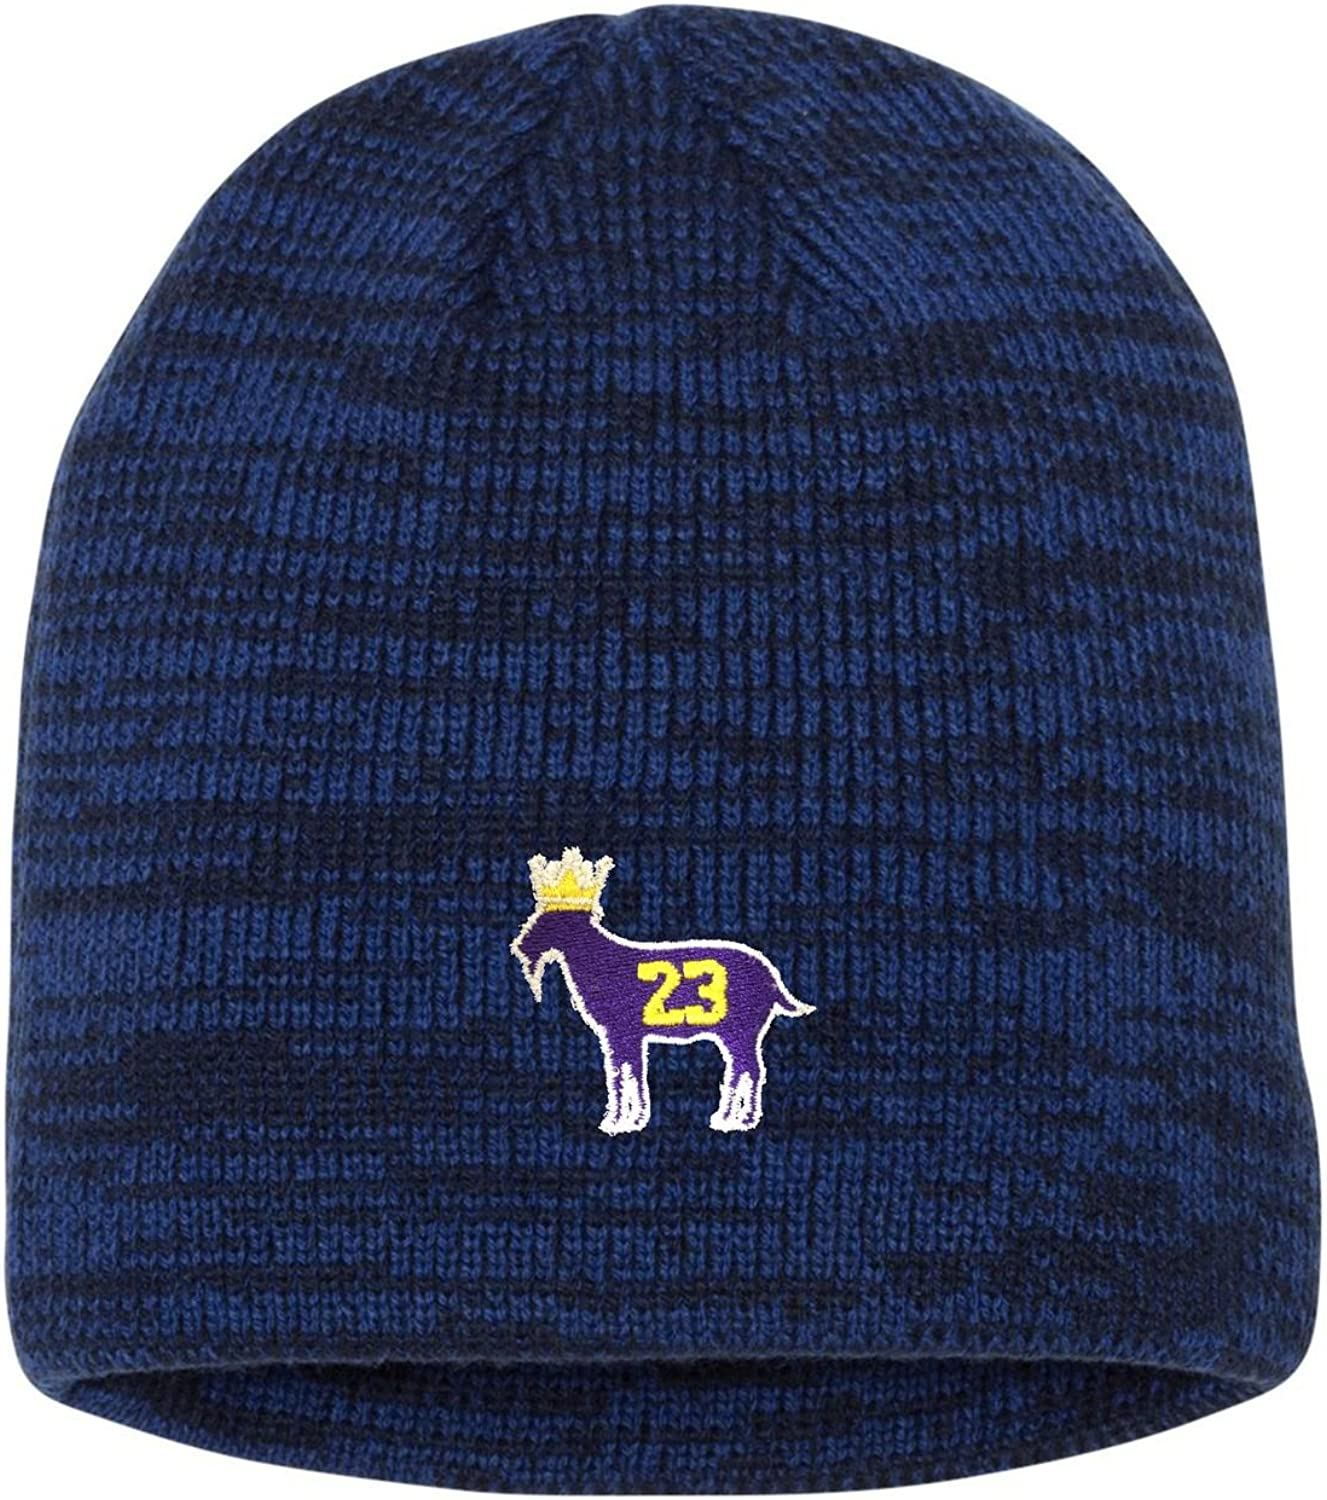 Adult Goat James G.O.A.T King Embroidered Marled Knit Beanie Cap